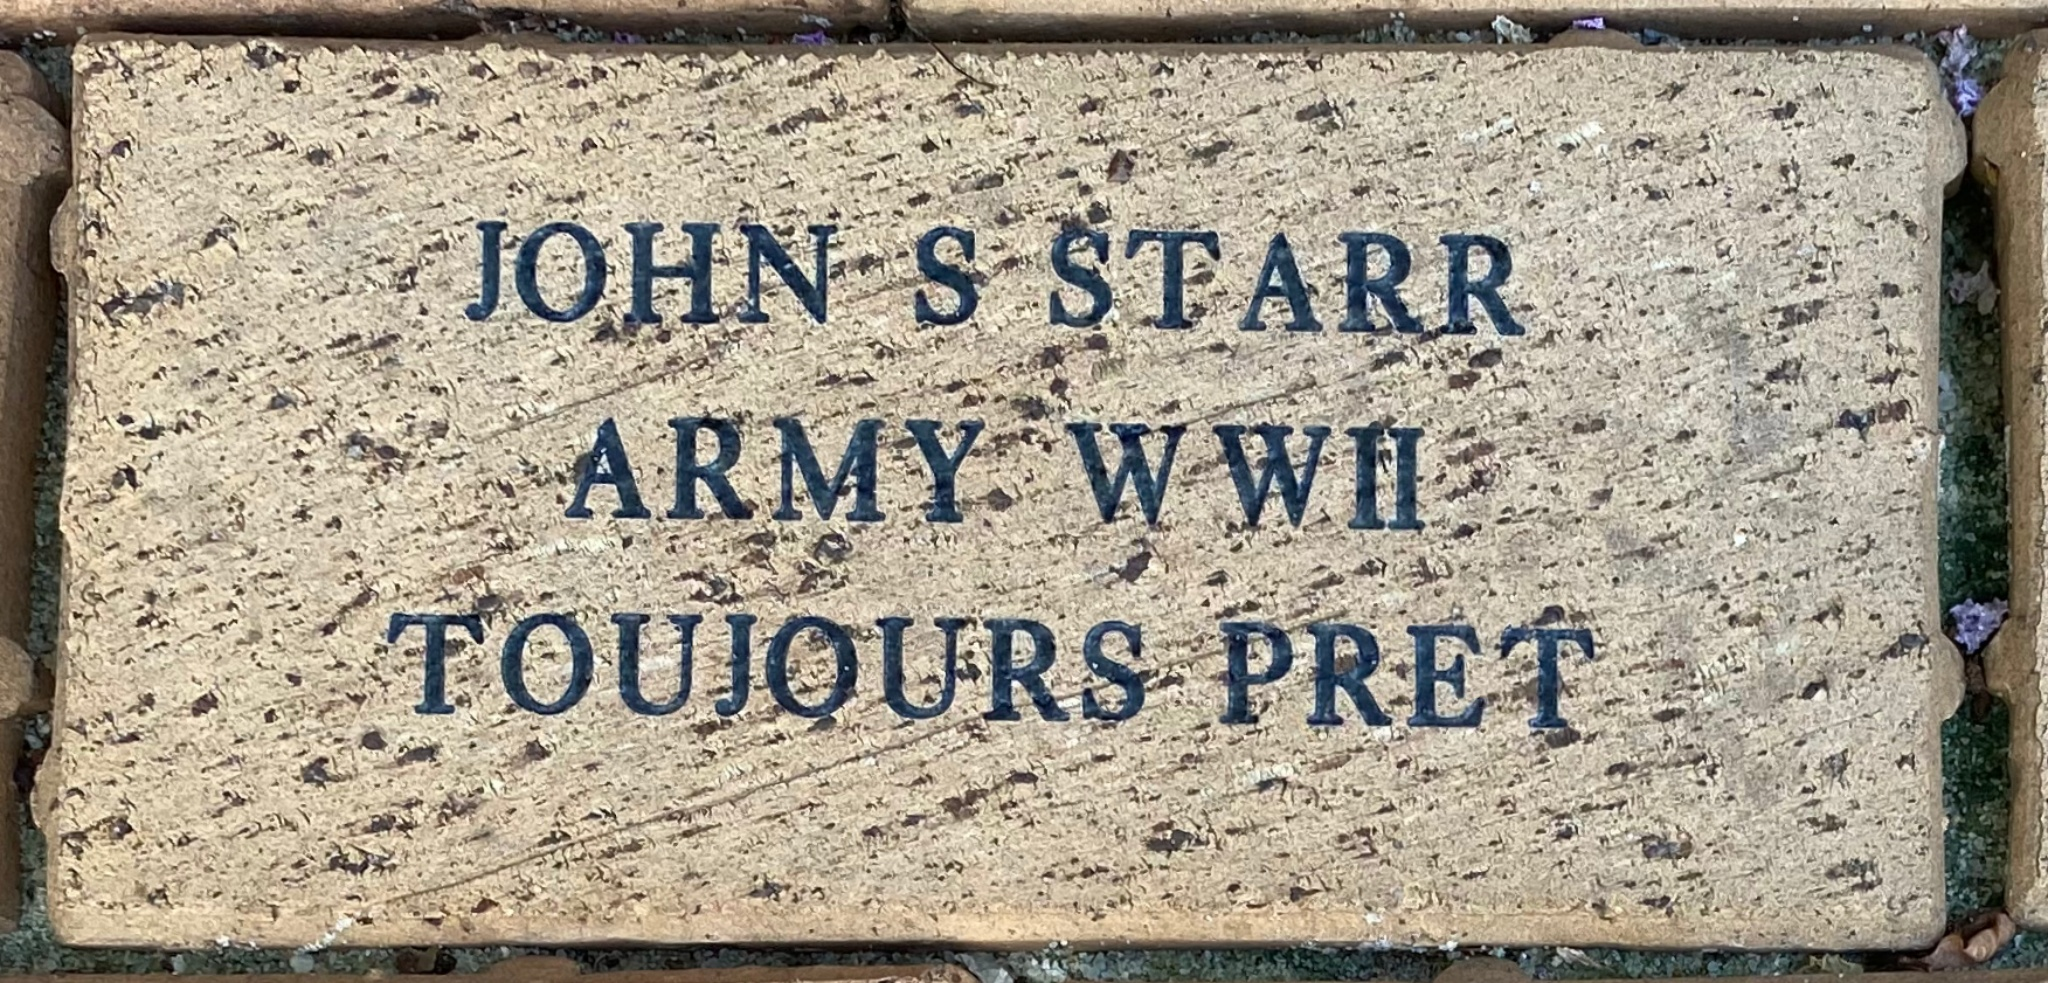 JOHN S STARR ARMY WWII TOUJOURS PRET